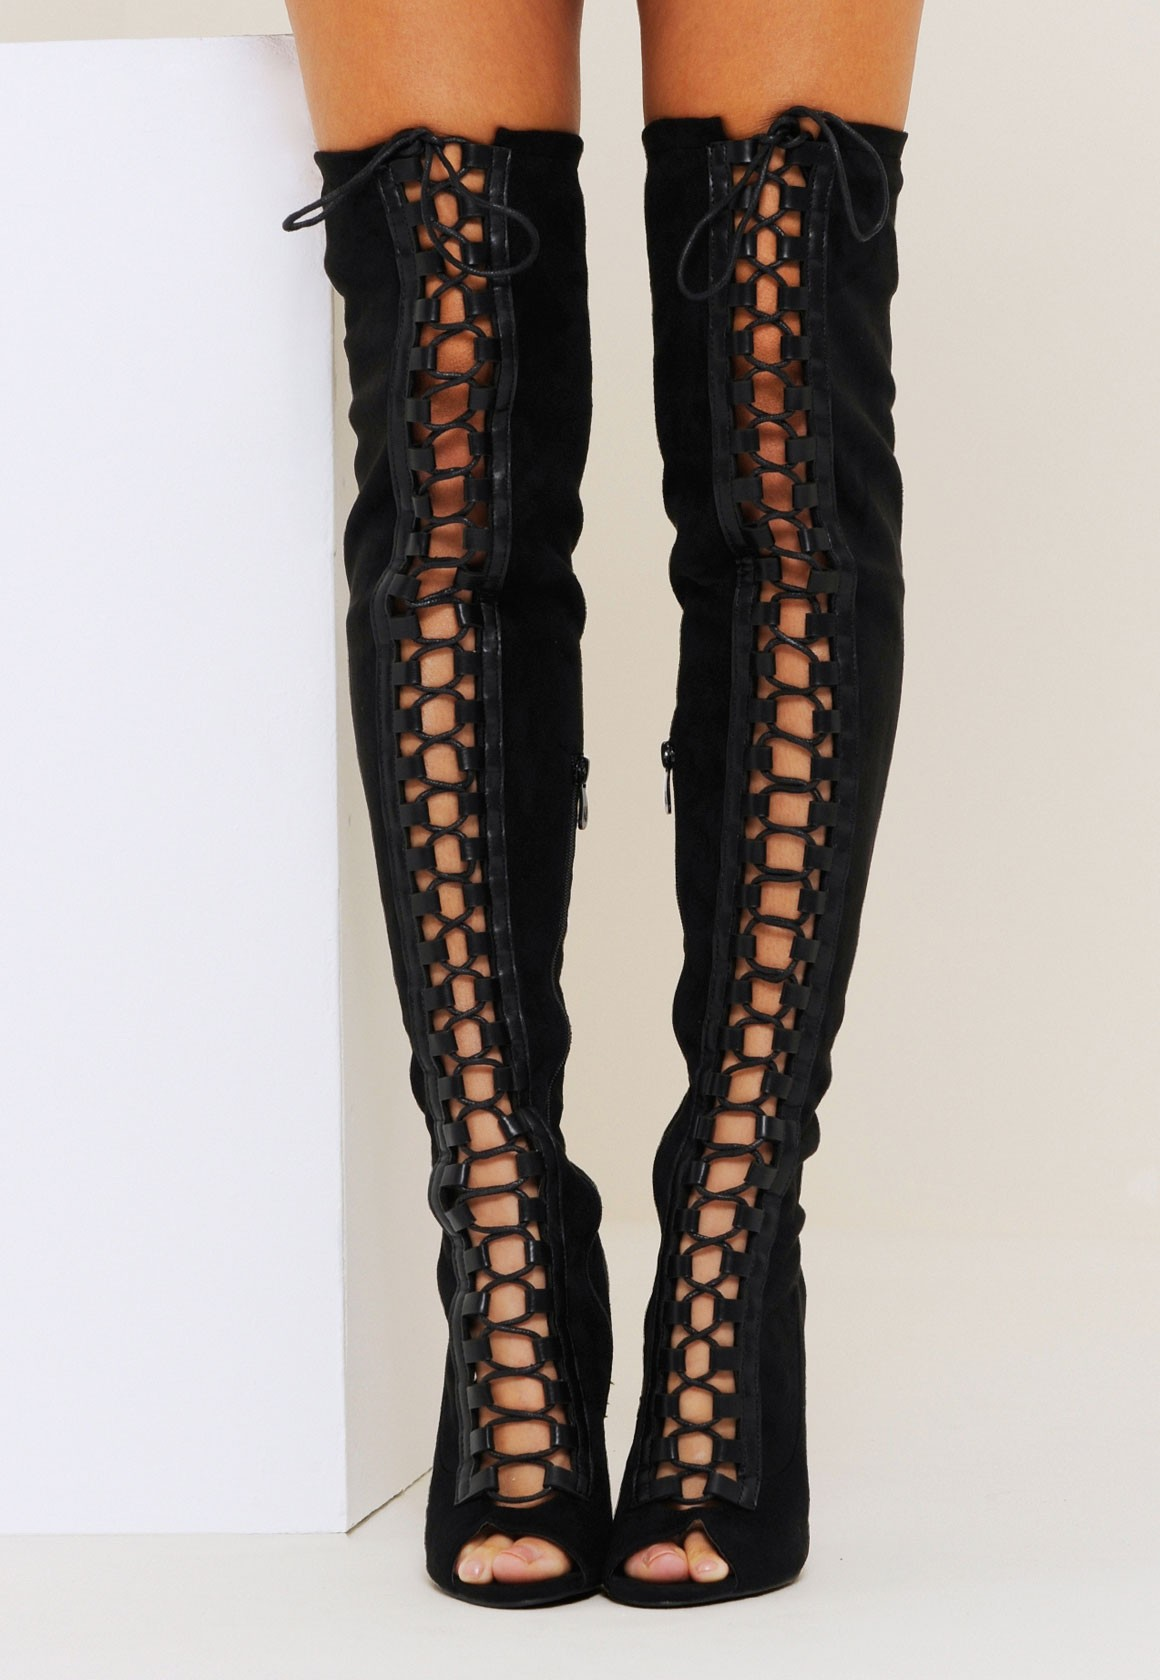 Open Toe Lace Up Thigh High Boots FfhXLkFC